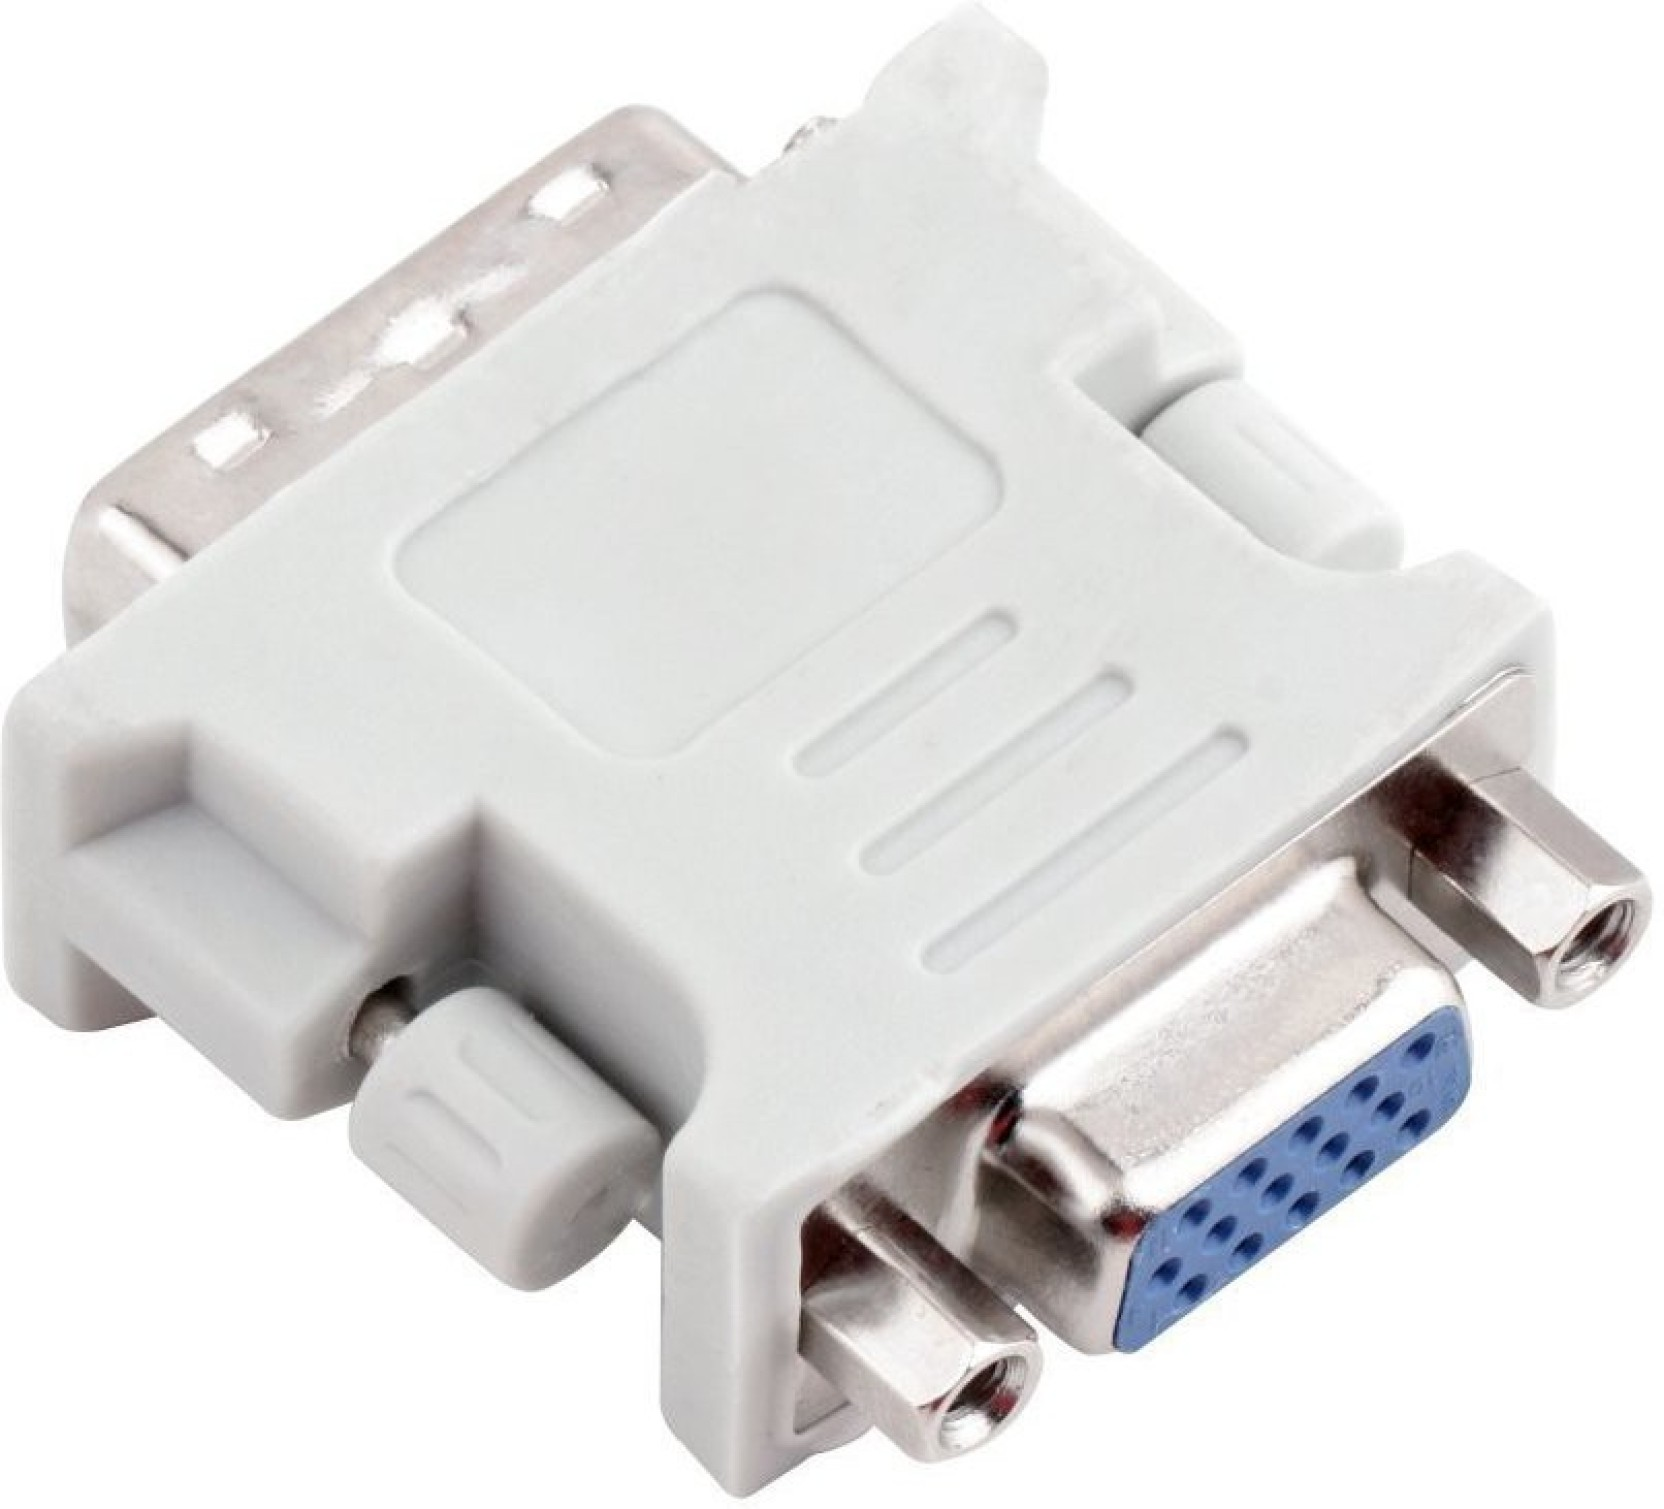 Lipiworld Tv Out Cable Dvi 24 5 Male To Vga 15 Pin Female Convertor Kabel 15m Meter M Digital Home